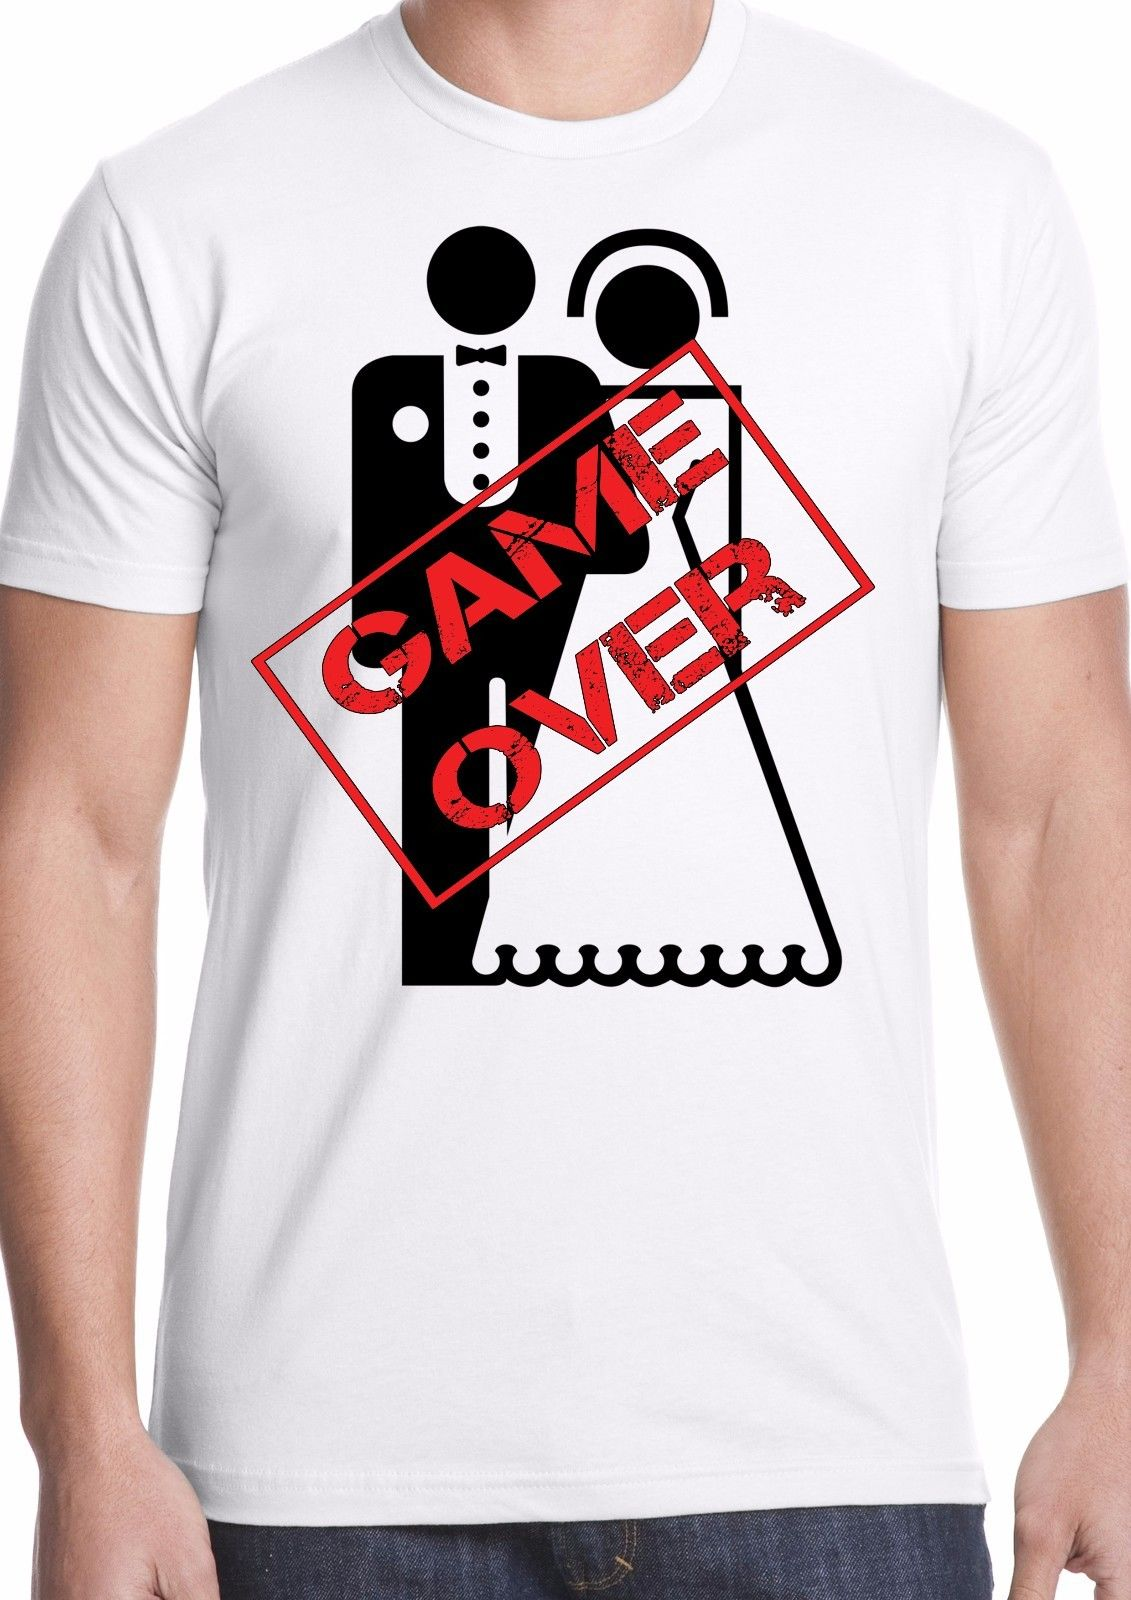 game over t-shirt stag do marriage gift personalised funny humor wedding groom !